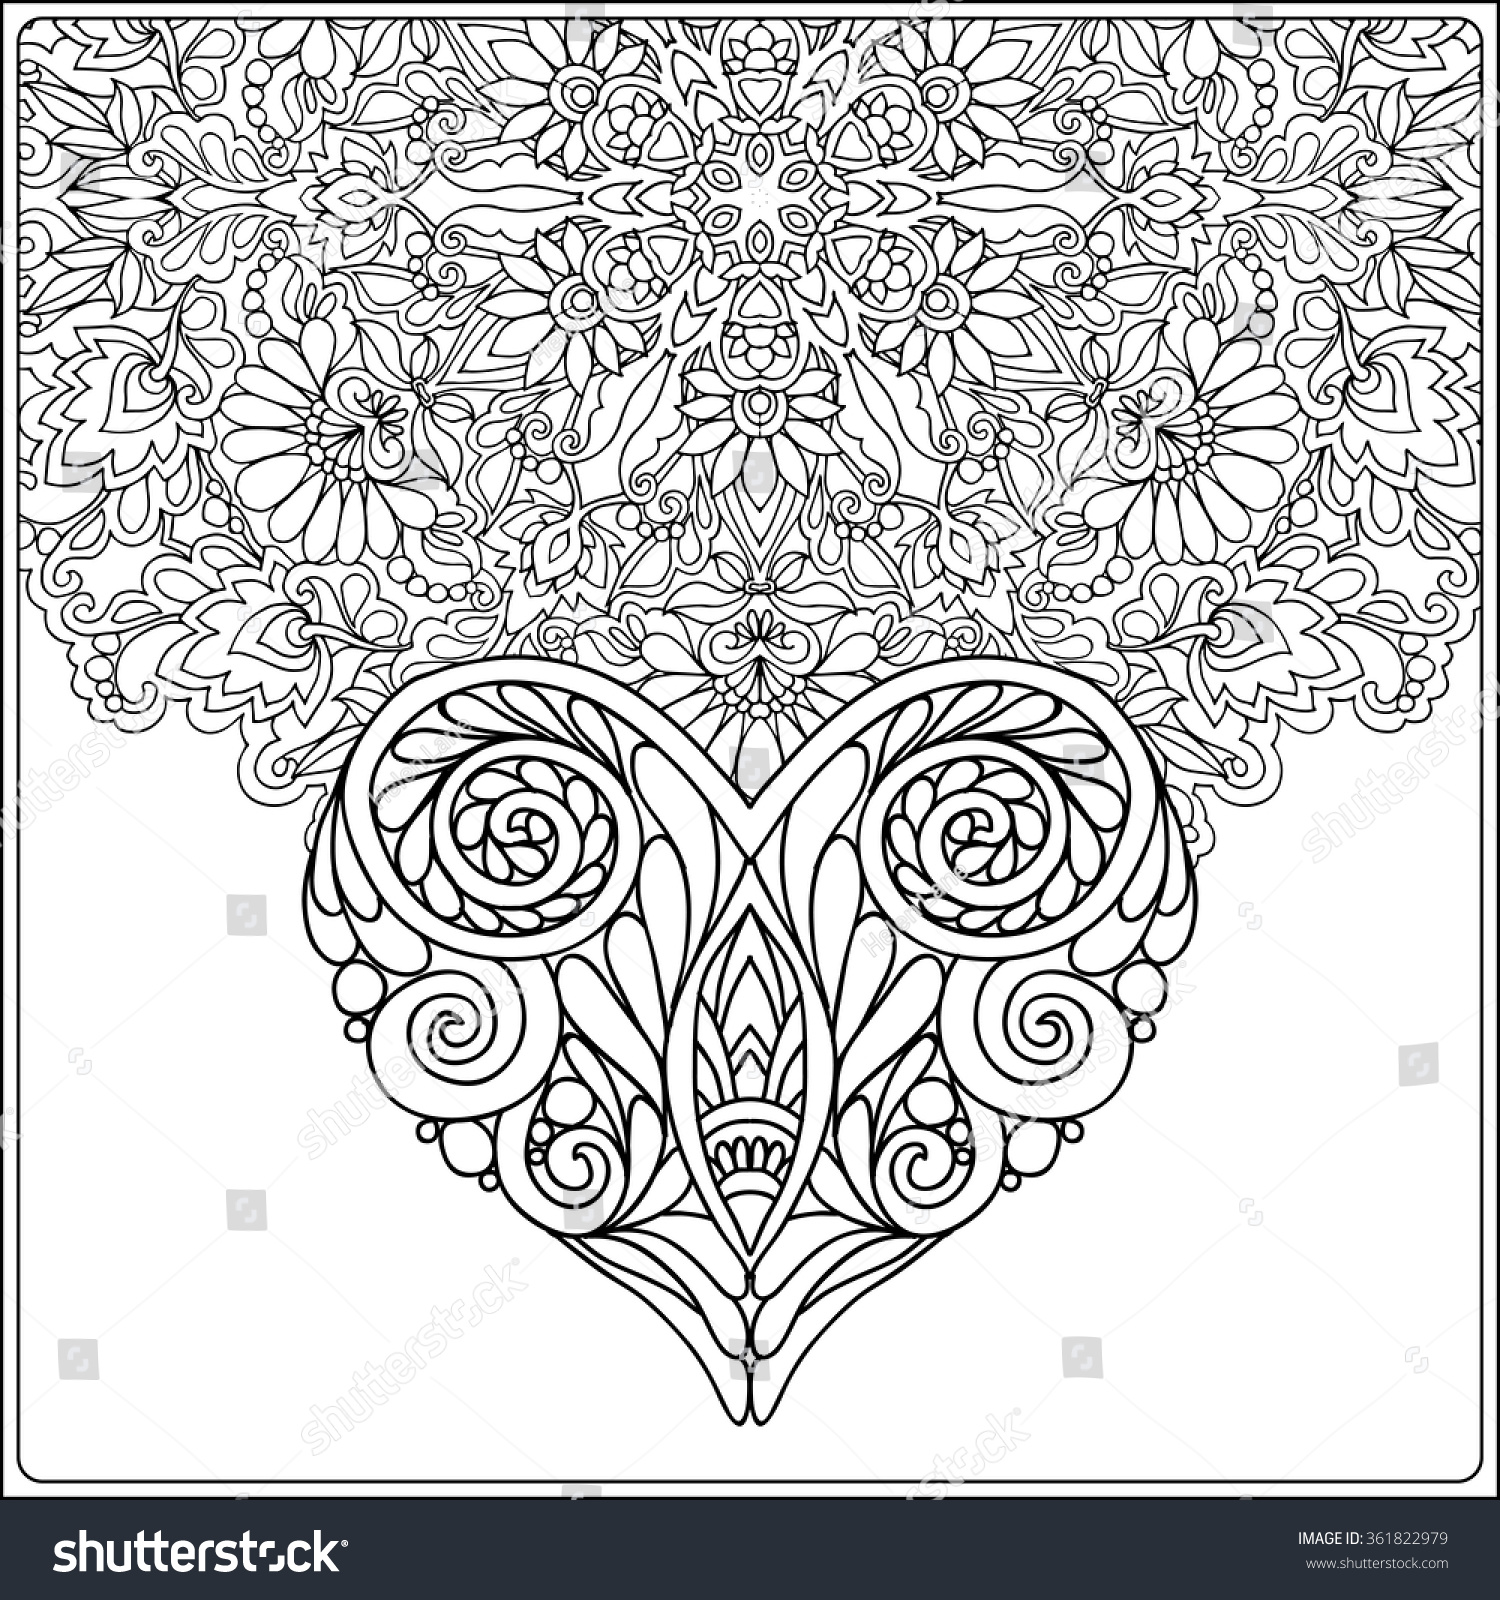 Valentines day mandala coloring pages - Hand Drawn Floral Mandala And Decorative Love Heart For Valentine S Day Vector Illustration Coloring